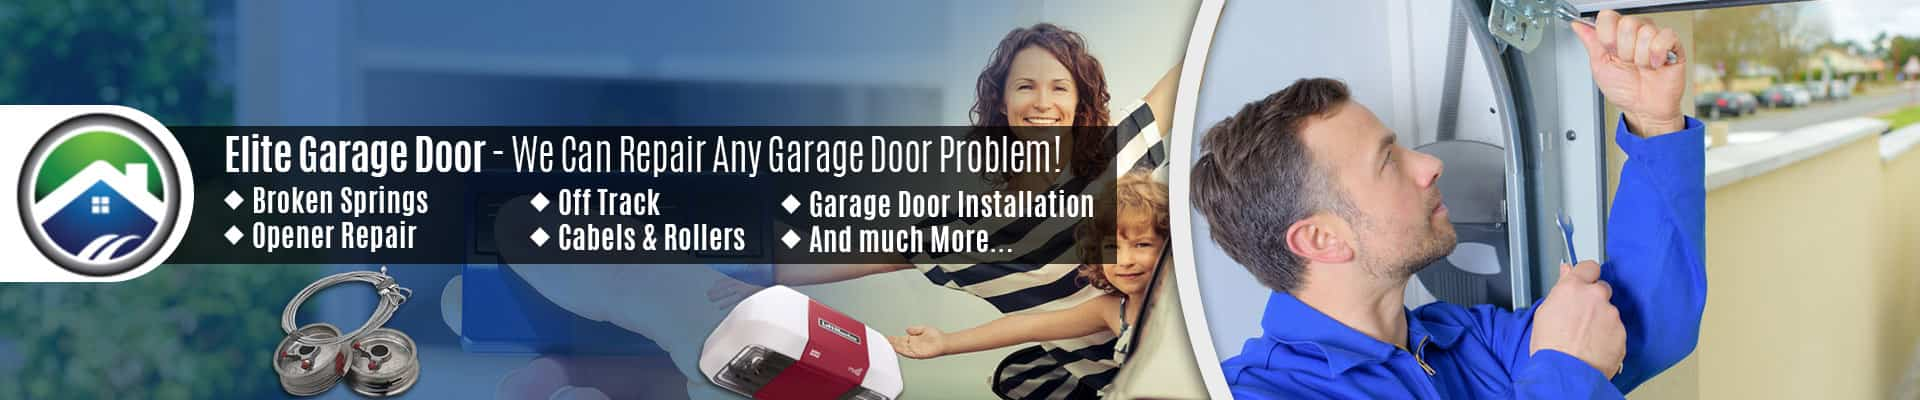 Garage Door Repair Renton WA • Elite Tech Garage Door Services